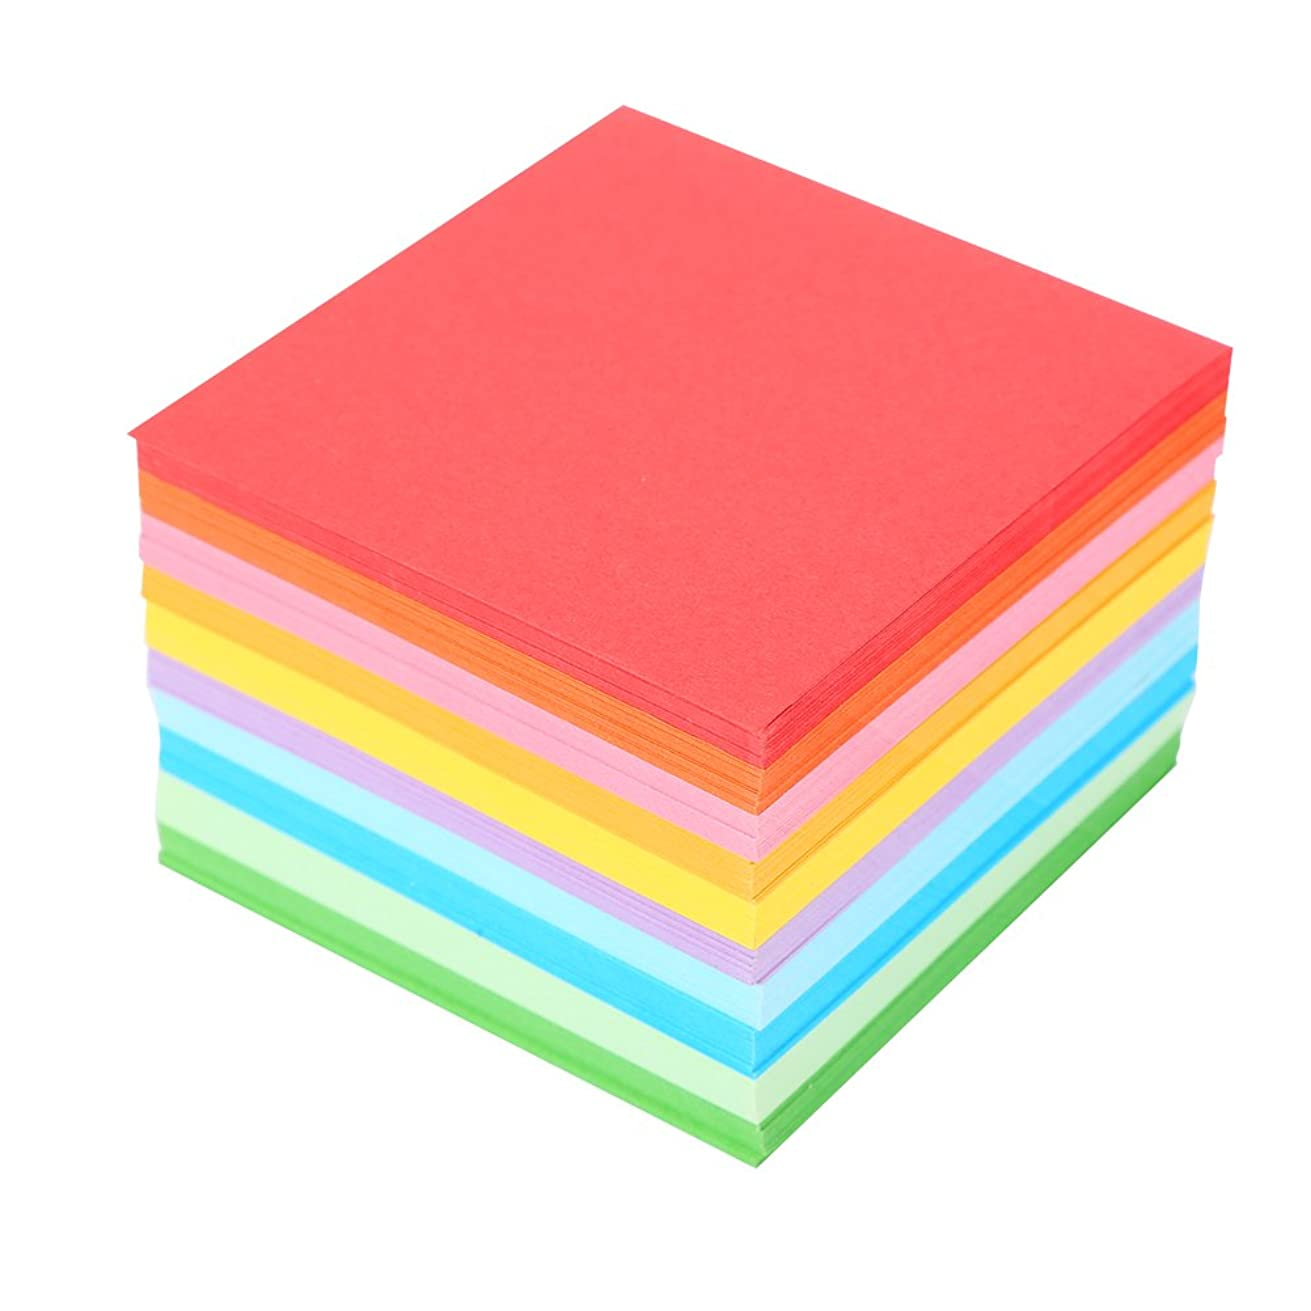 520 pcs 10 Colors Origami Paper Square Folding Paper Colorful Double Sided Origami Paper Card Making DIY Craft 7x7 cm